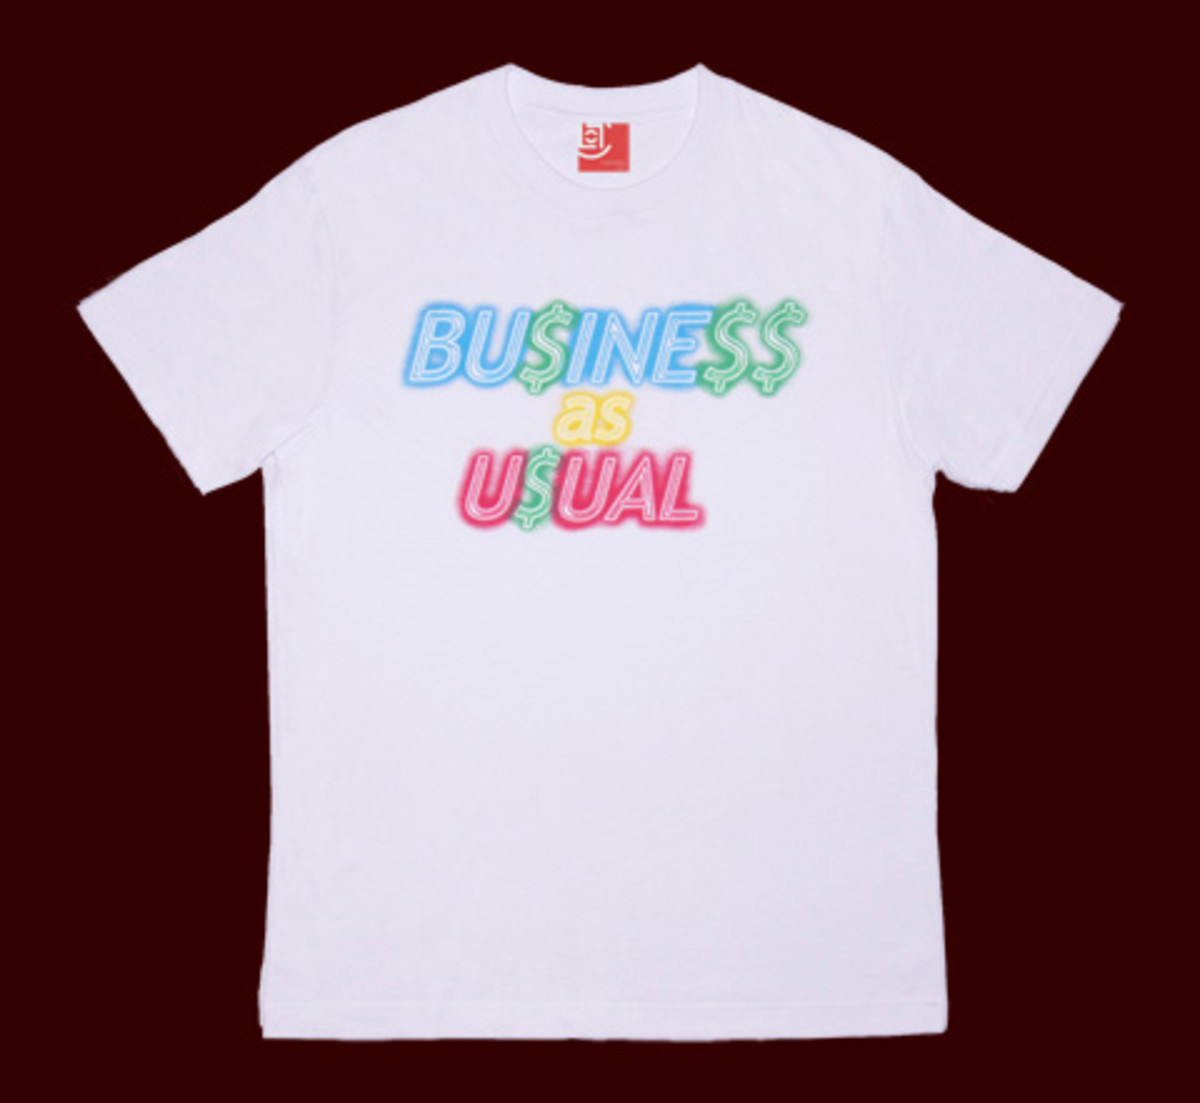 CLOT x Juice - Business As Usual Tee - 0